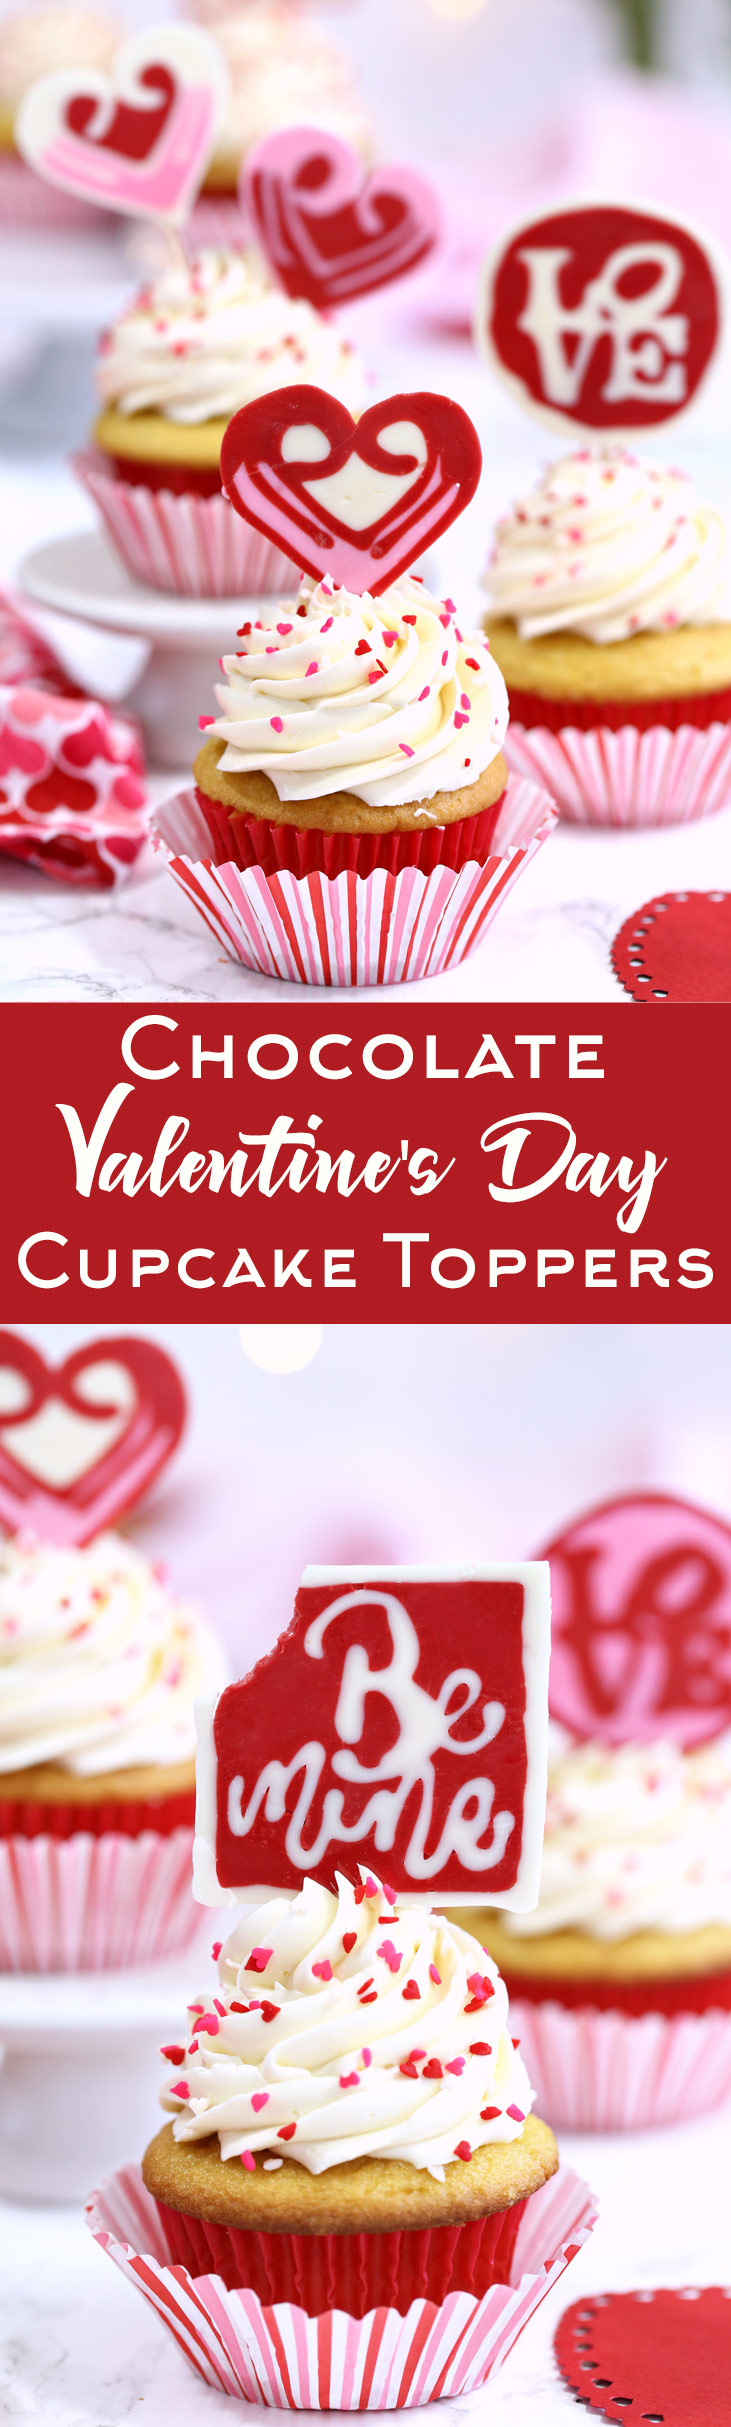 Chocolate Valentine's Day Cupcake Toppers - cute and easy edible decorations for Valentine's Day Cupcakes! | From OhNuts.com